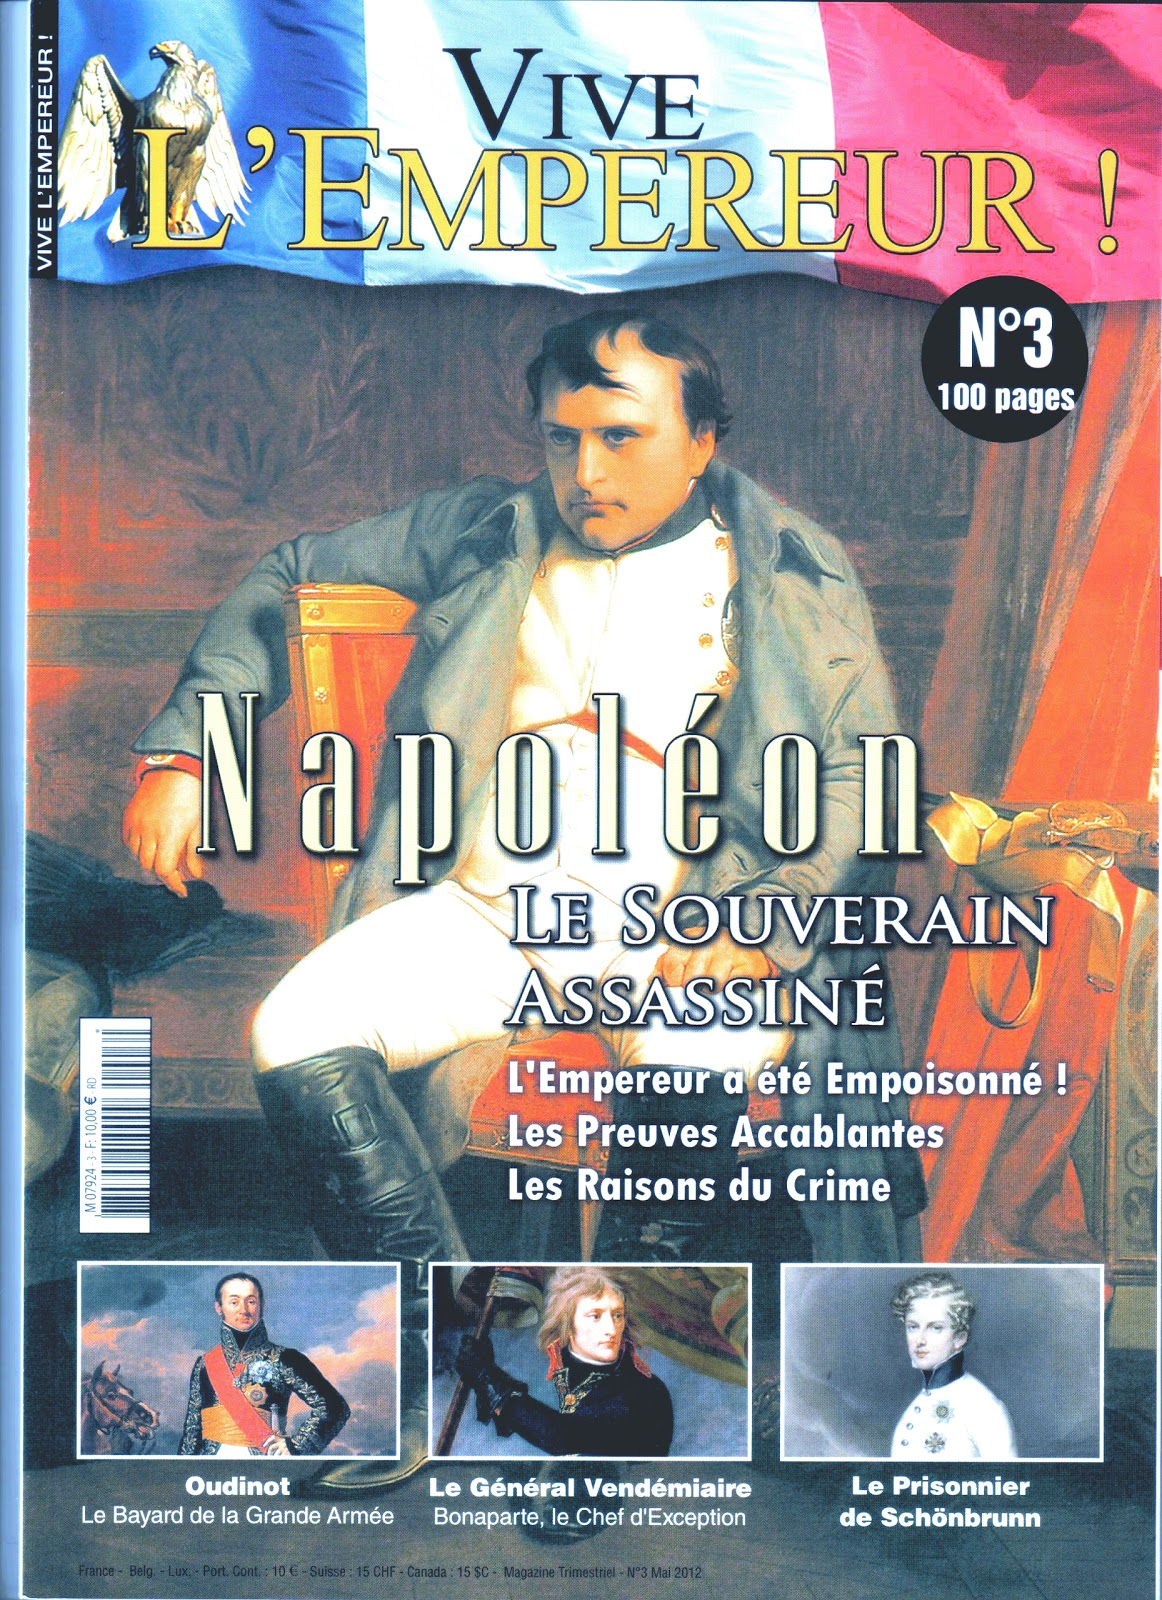 napoleon s greatness Napoleon bonaparte was what were napoleon's major he was able to win significant victories over austria and led efforts to weaken great britain's interests.